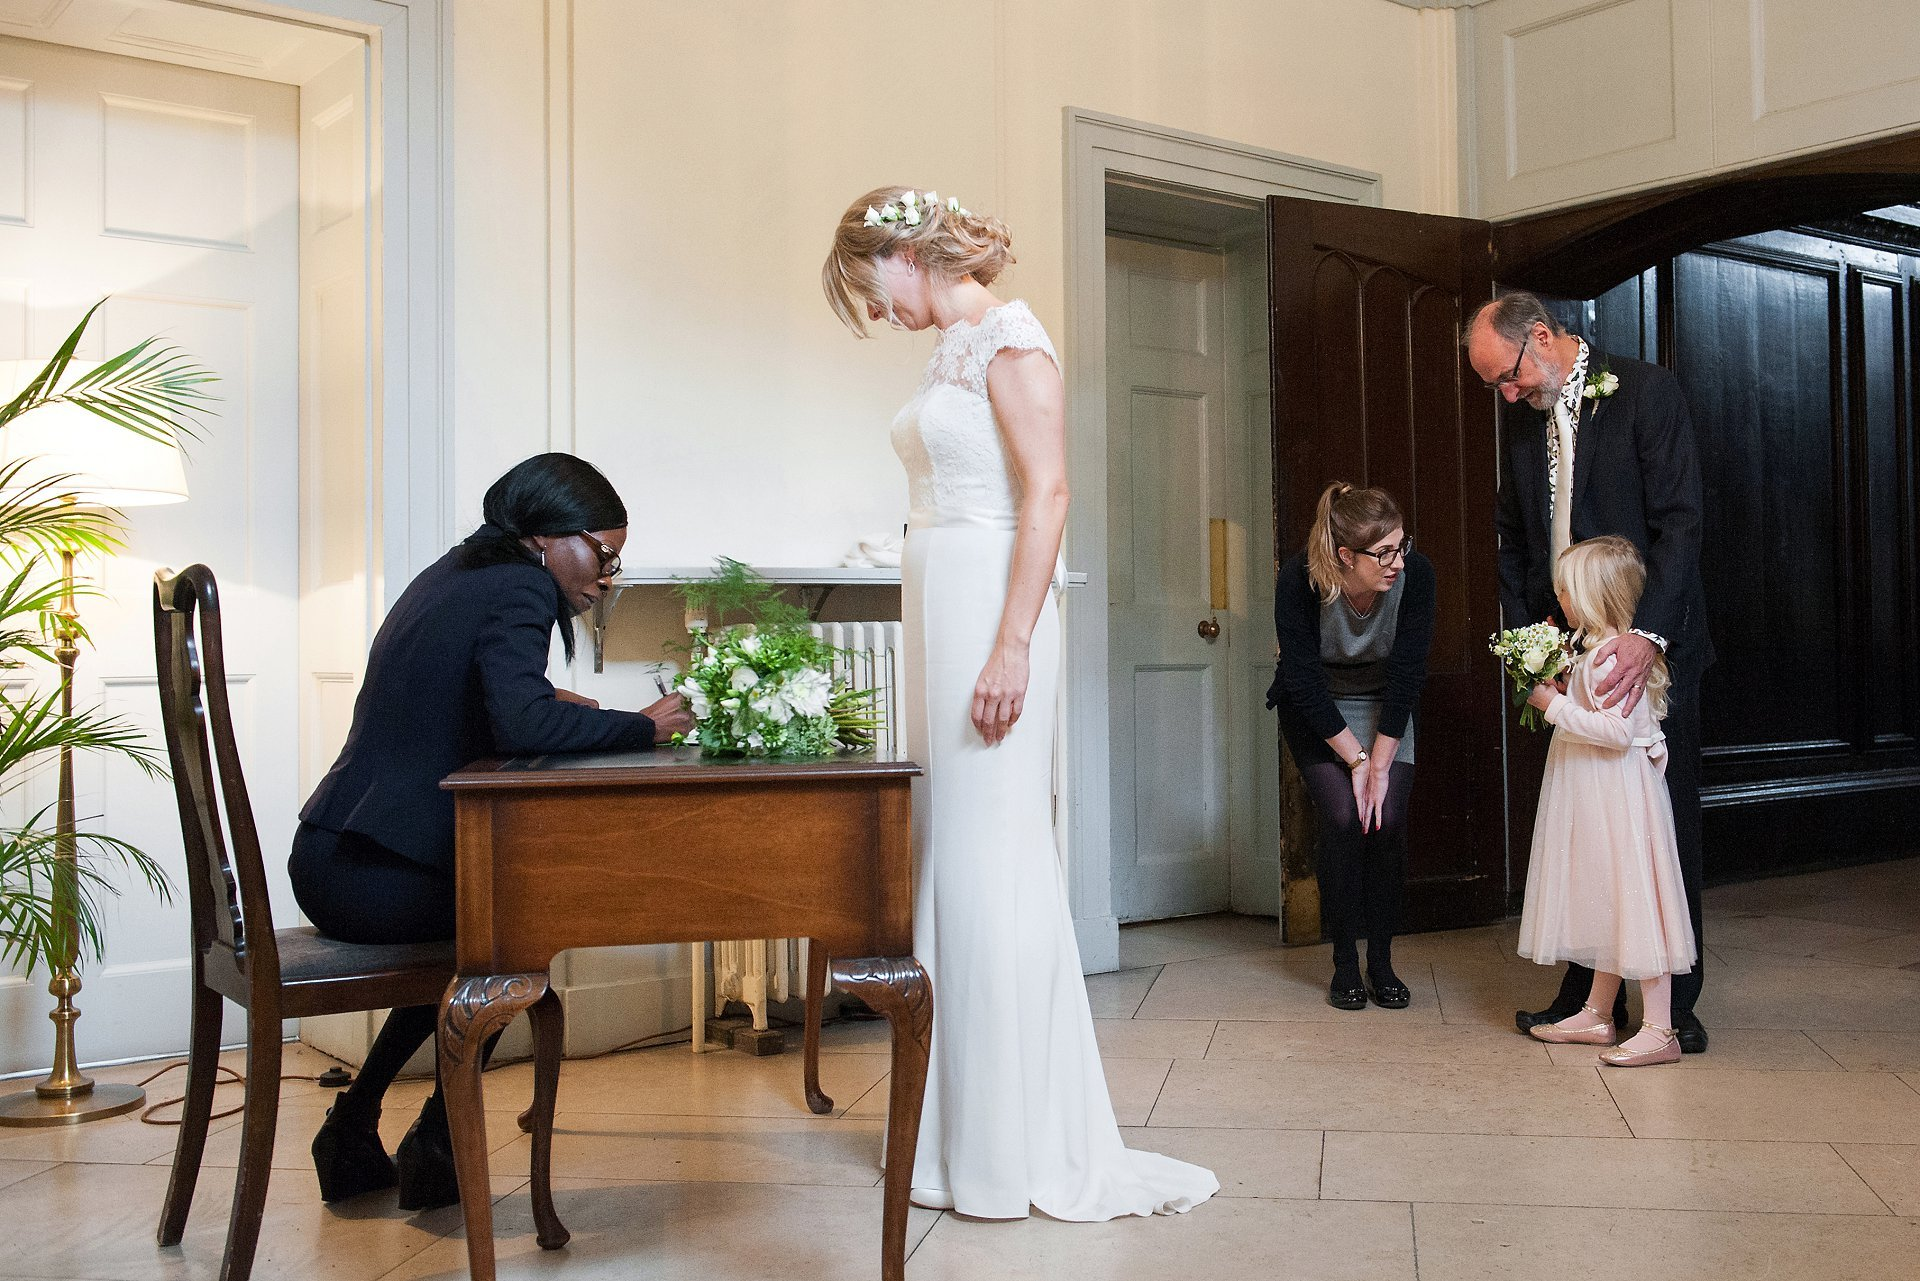 The bride completes the marriage certificate with a Registrar from Hammersmith & Fulham Register Office withe her father and daughter in the background